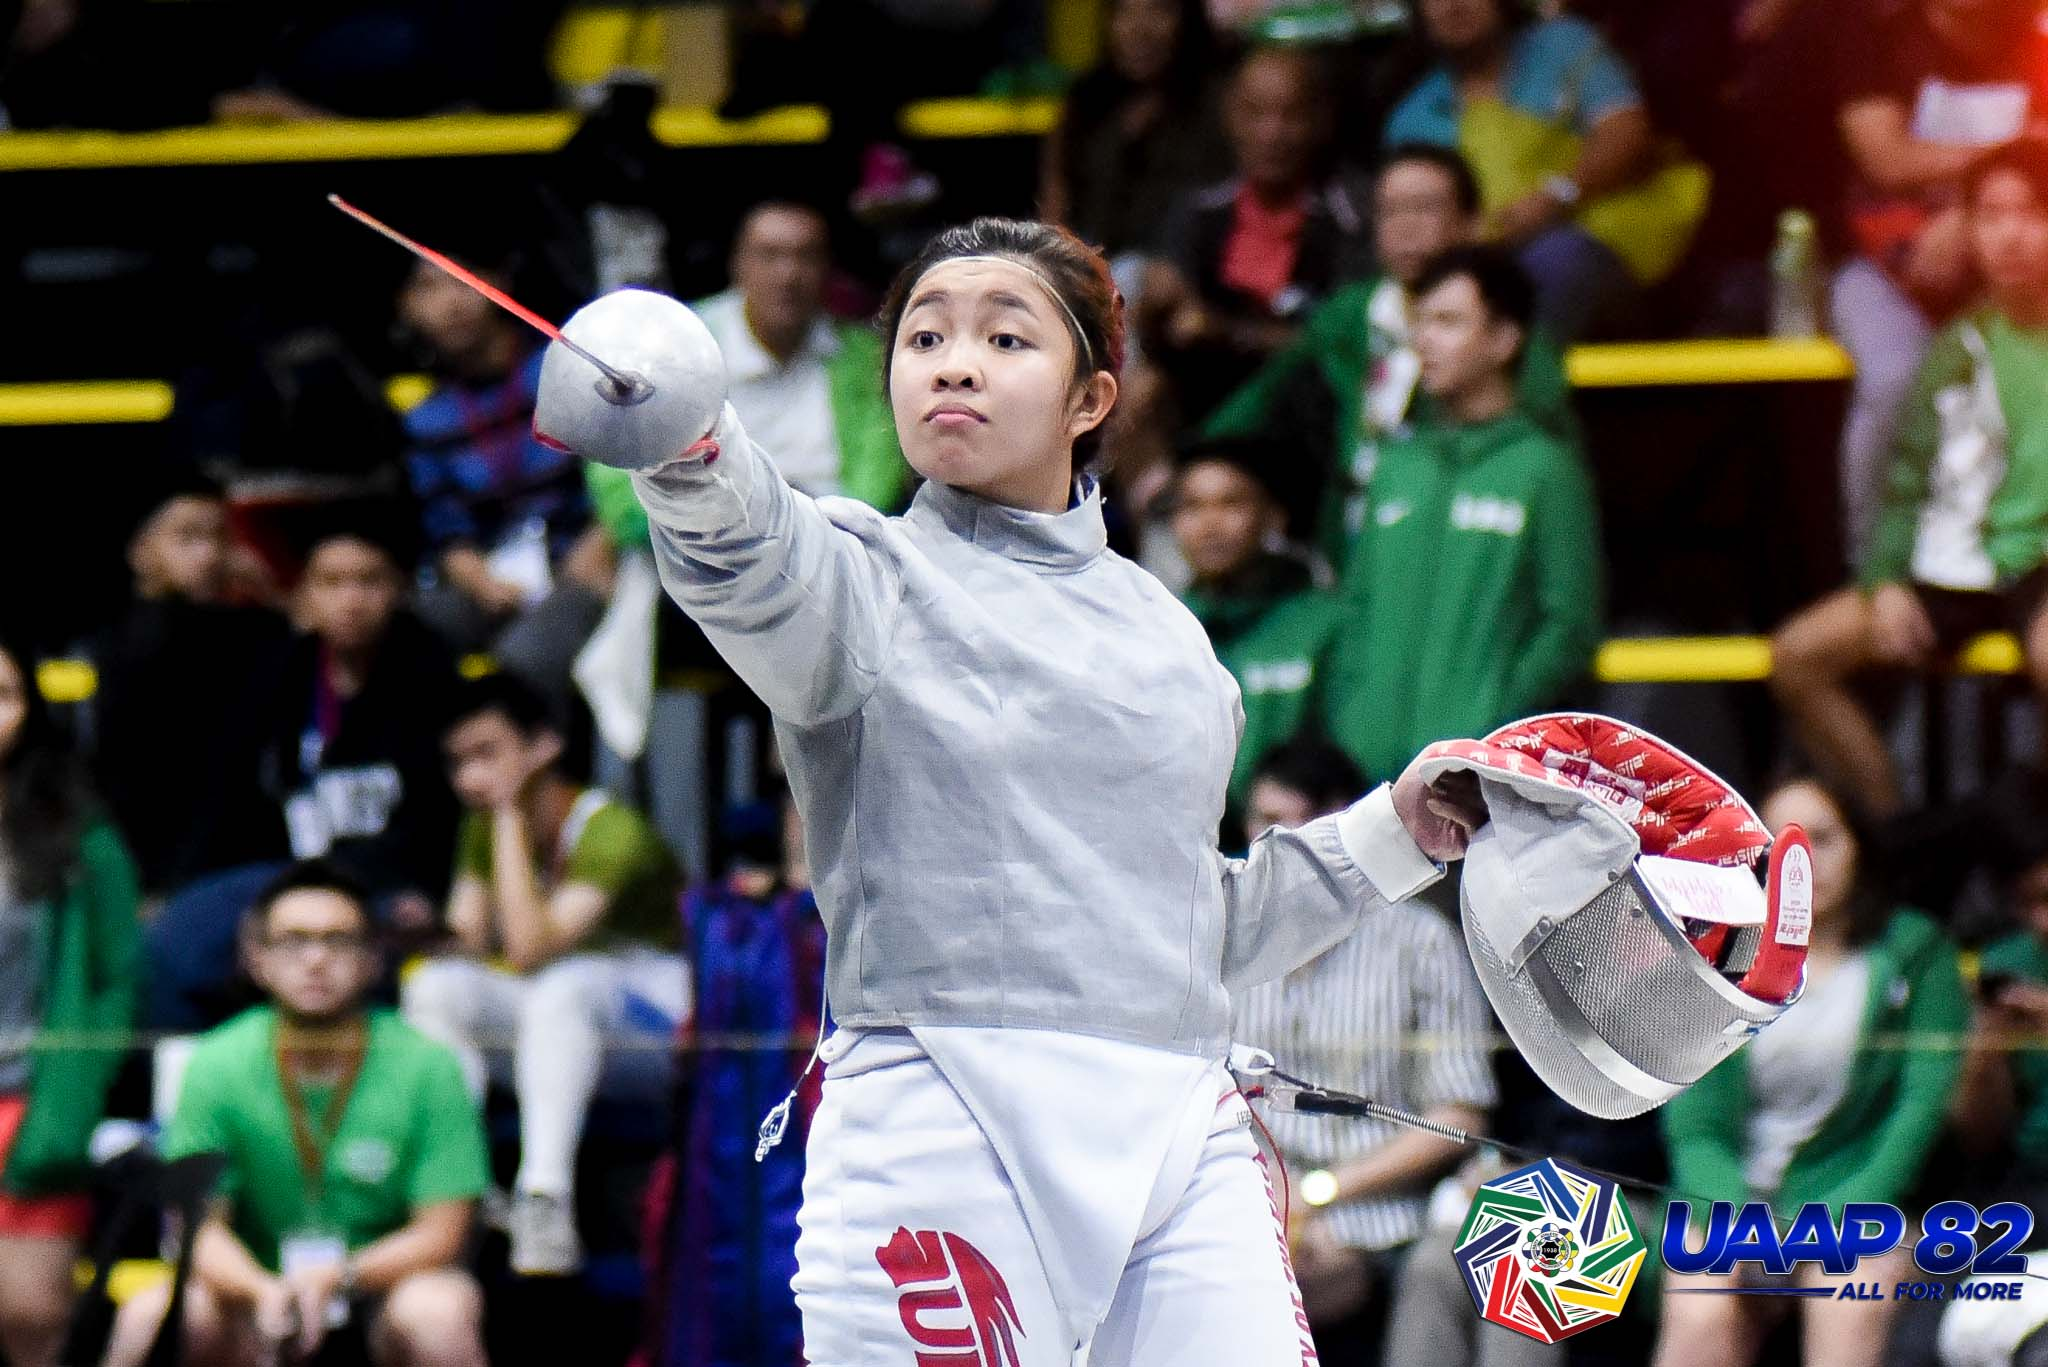 Fencing in the Philippines - Catantan accepts US scholarship 7